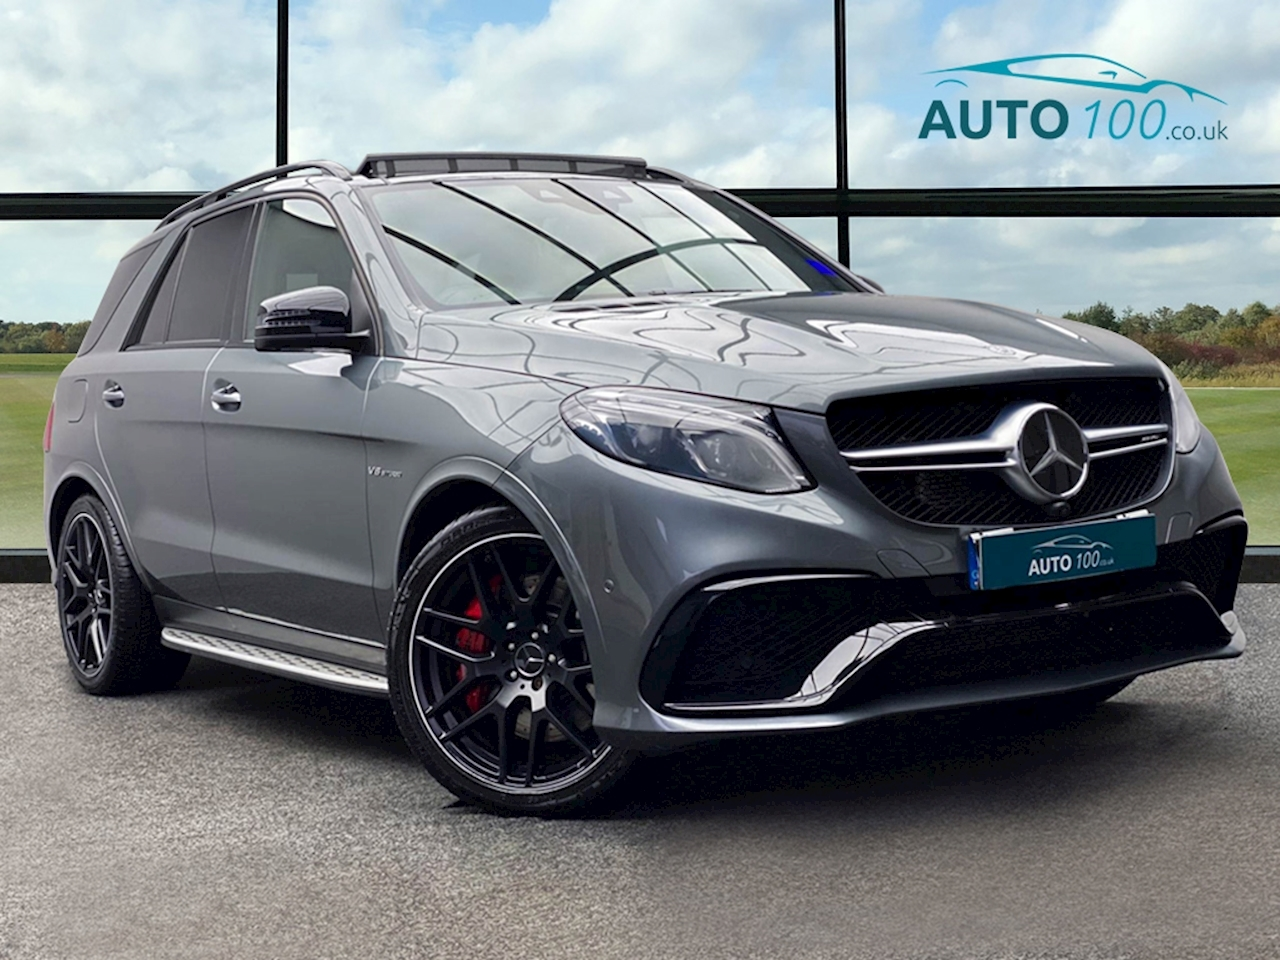 Mercedes-Benz 5.5 GLE63 V8 AMG S Night Edition SUV 5dr Petrol SpdS+7GT 4MATIC (s/s) (585 ps)